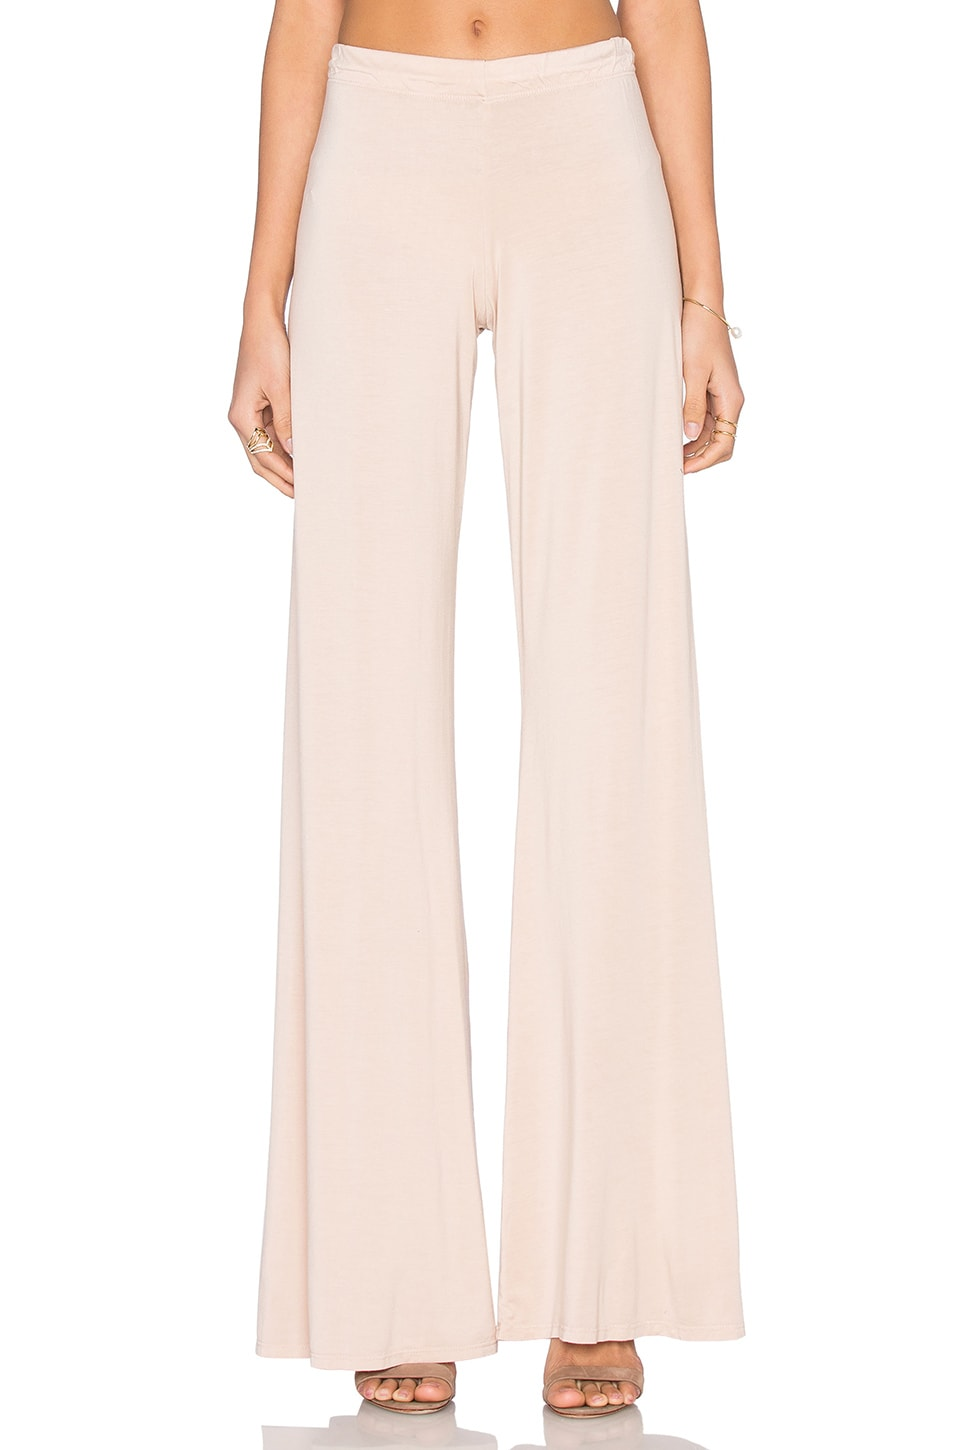 Michael Lauren Derby Wide Leg Pant in Champagne